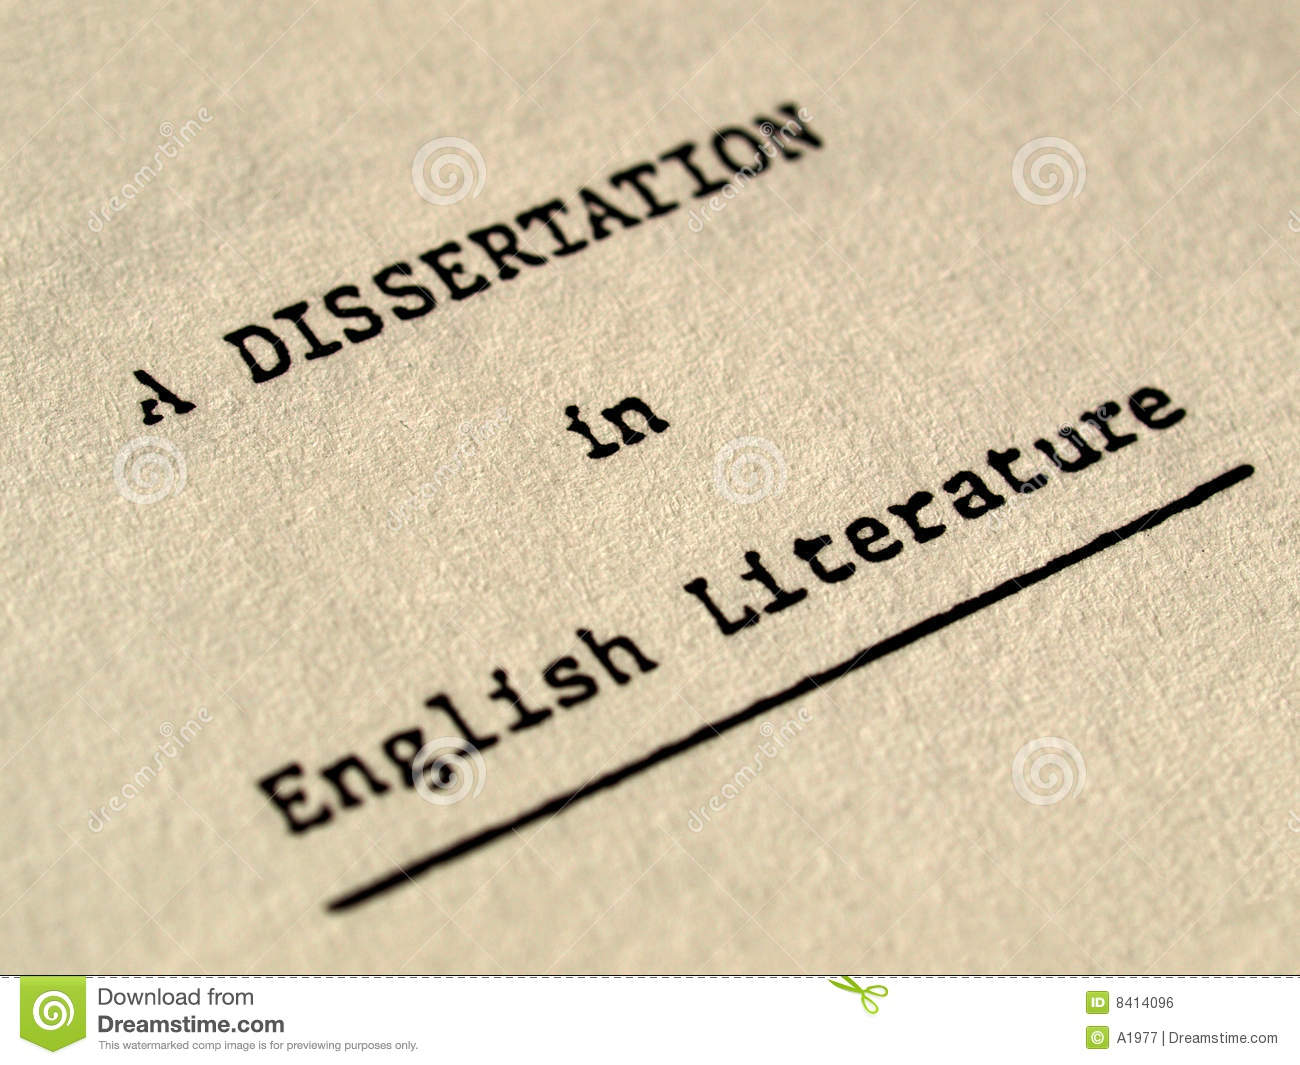 doctoral dissertation in english literature Doctor of english literature, distance learning degree programs for adult learners at the bachelors, masters, and doctoral level as a nontraditional university, self.